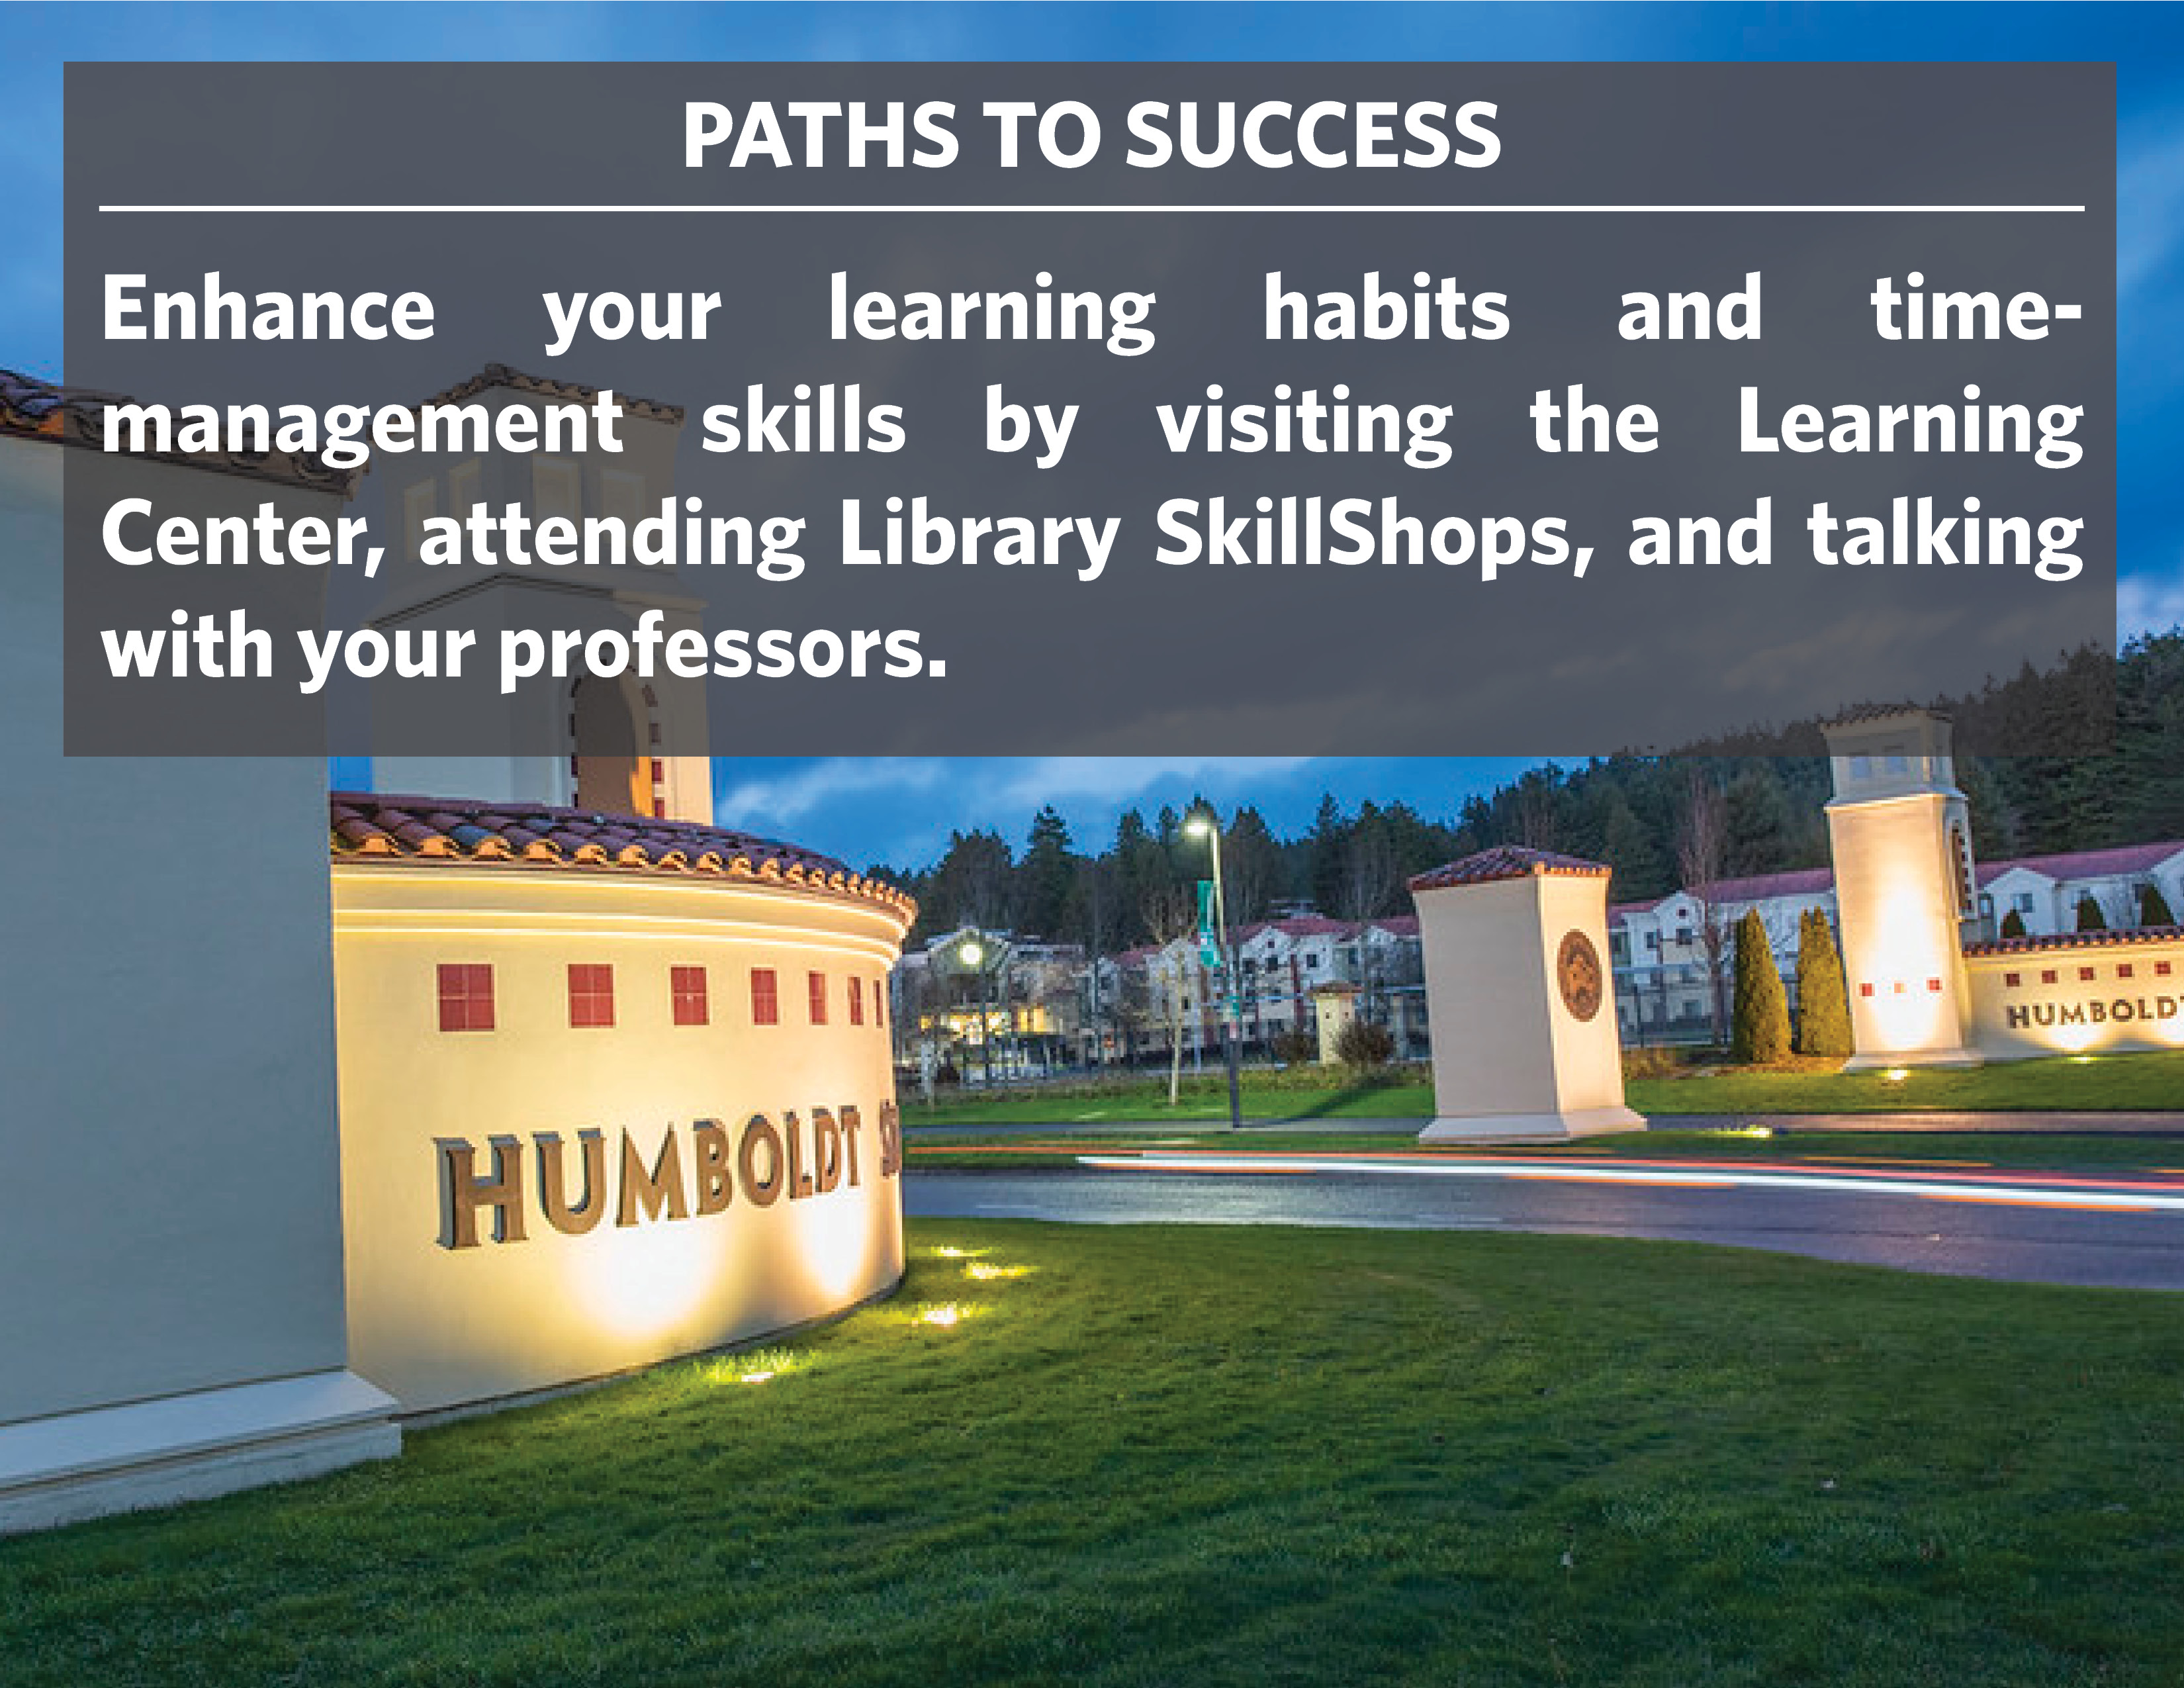 Paths to success: Enhance your learning habits and time-management skills by visiting the Learning center, attending Library SkillShops, and talking with your professors.